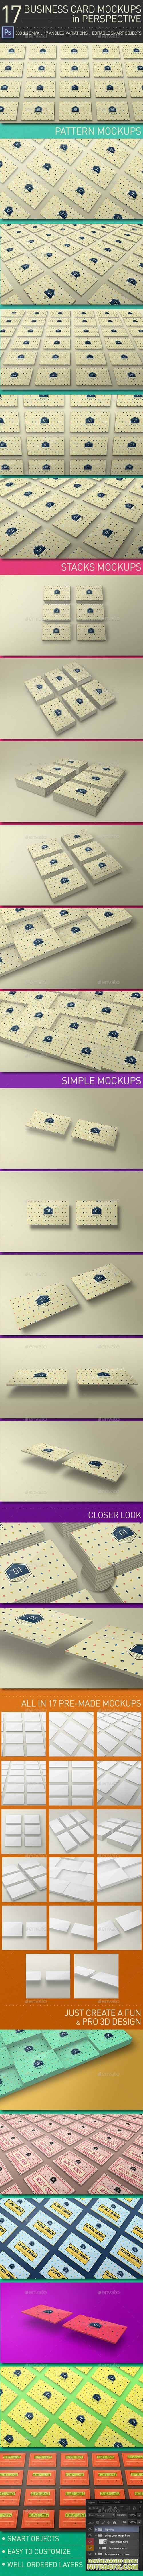 Business Card Mockups in Perspective 11862546